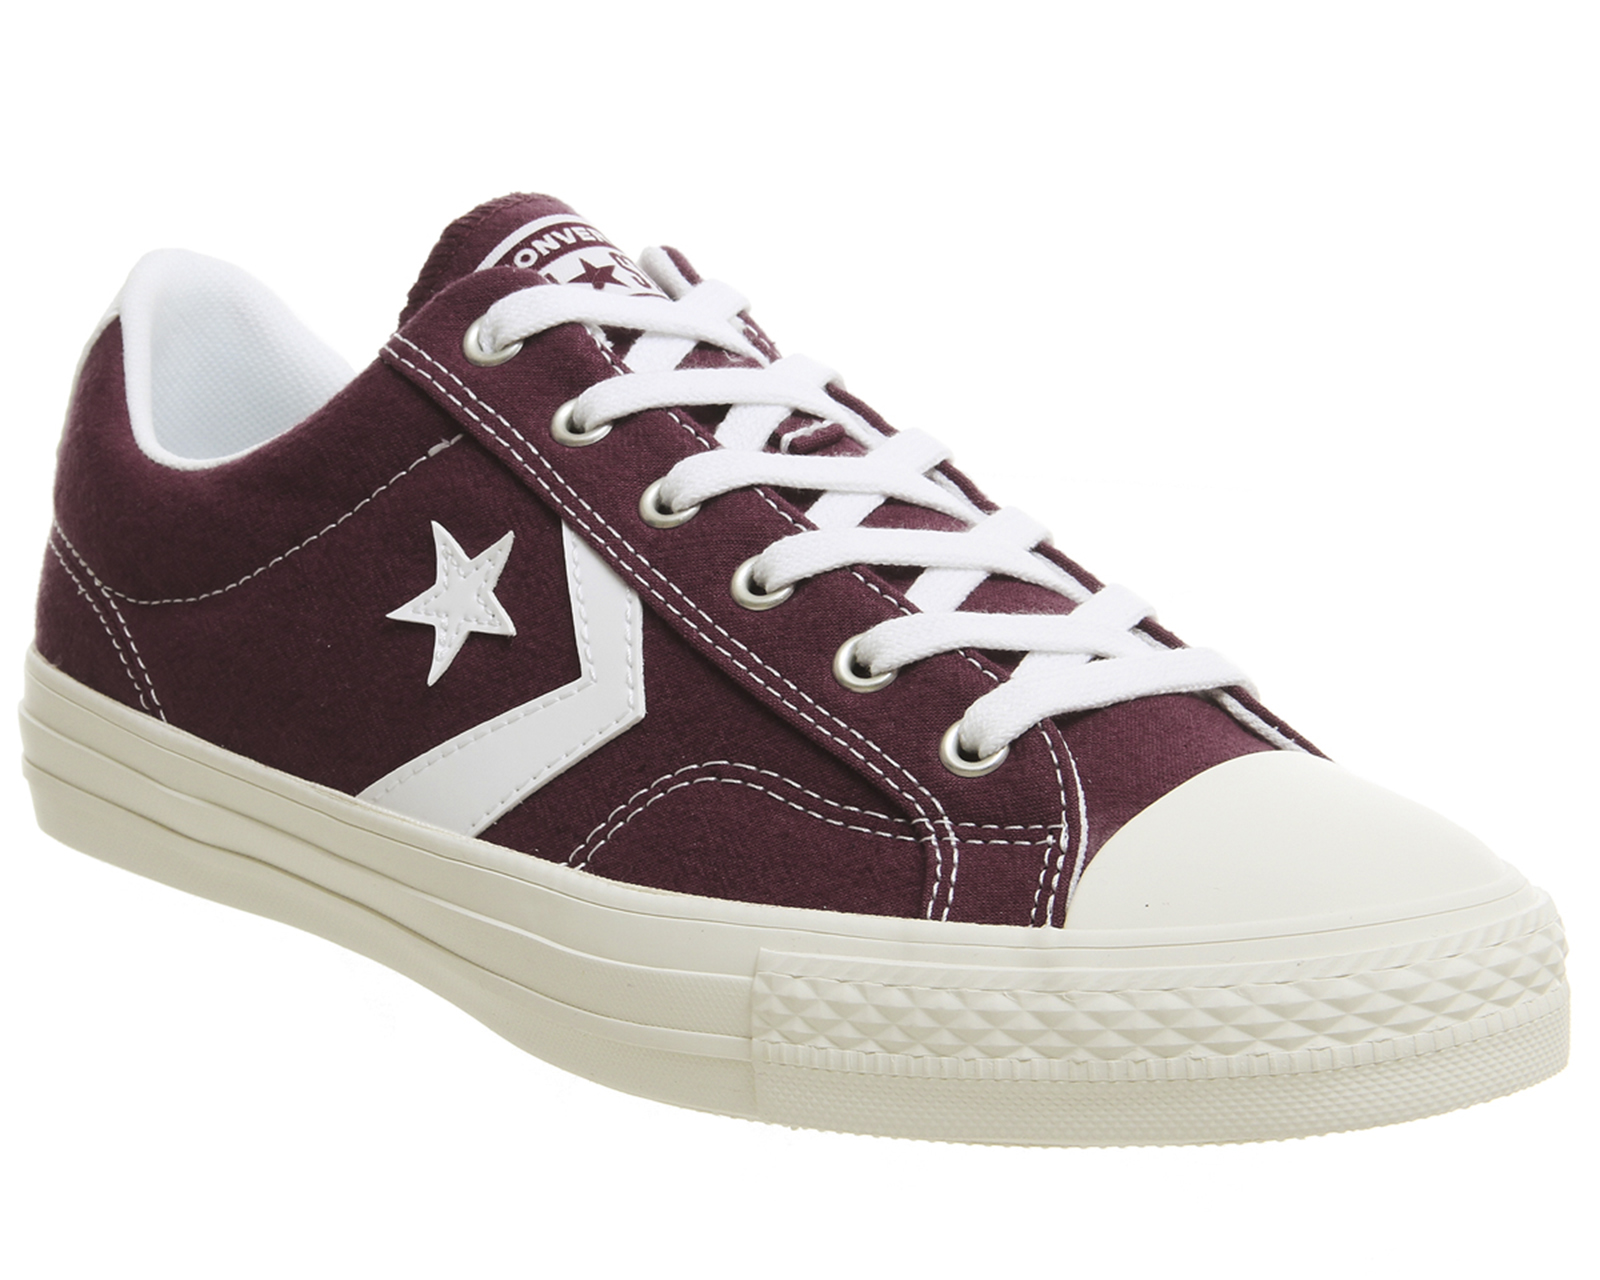 Sentinel Converse Star Player Ox Trainers DARK BURGUNDY WHITE Trainers Shoes 5e6c09718